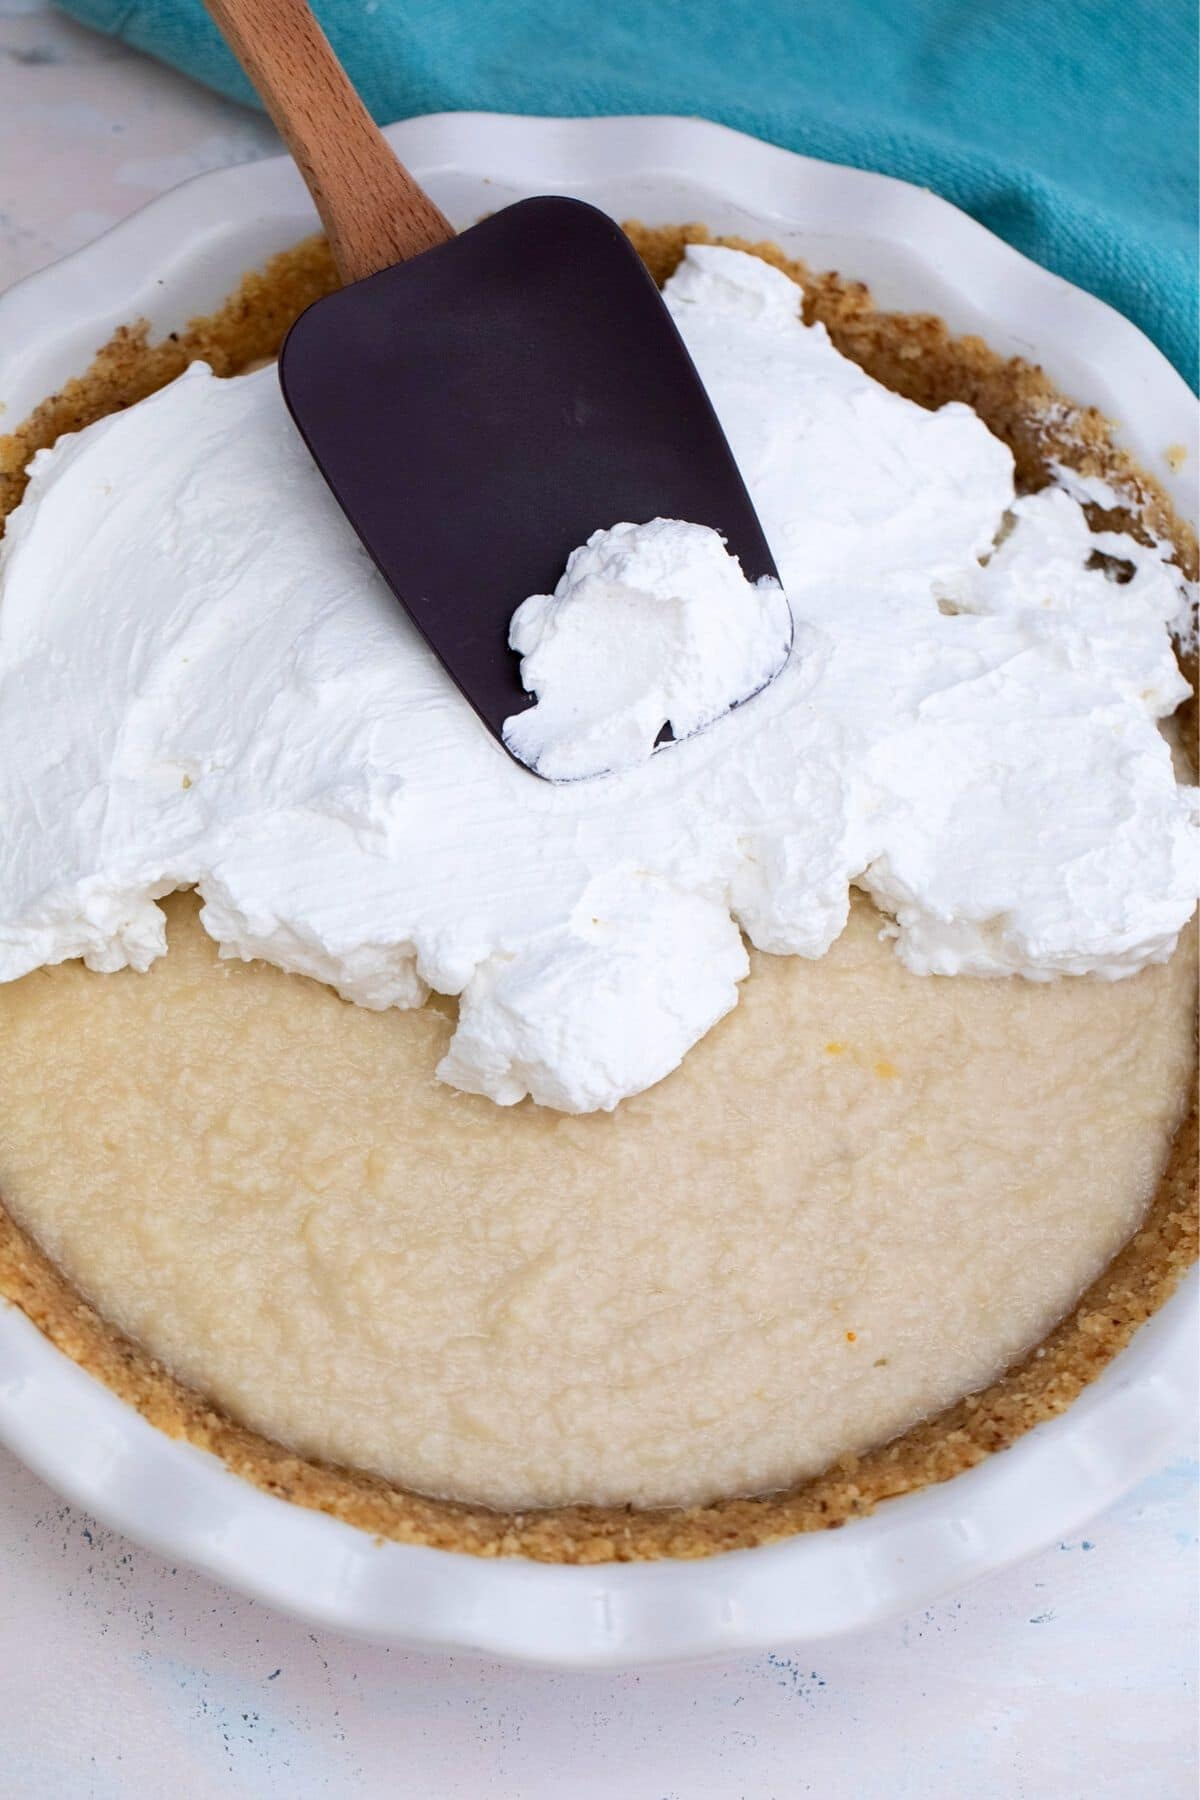 Spreading whipped cream over coconut filling